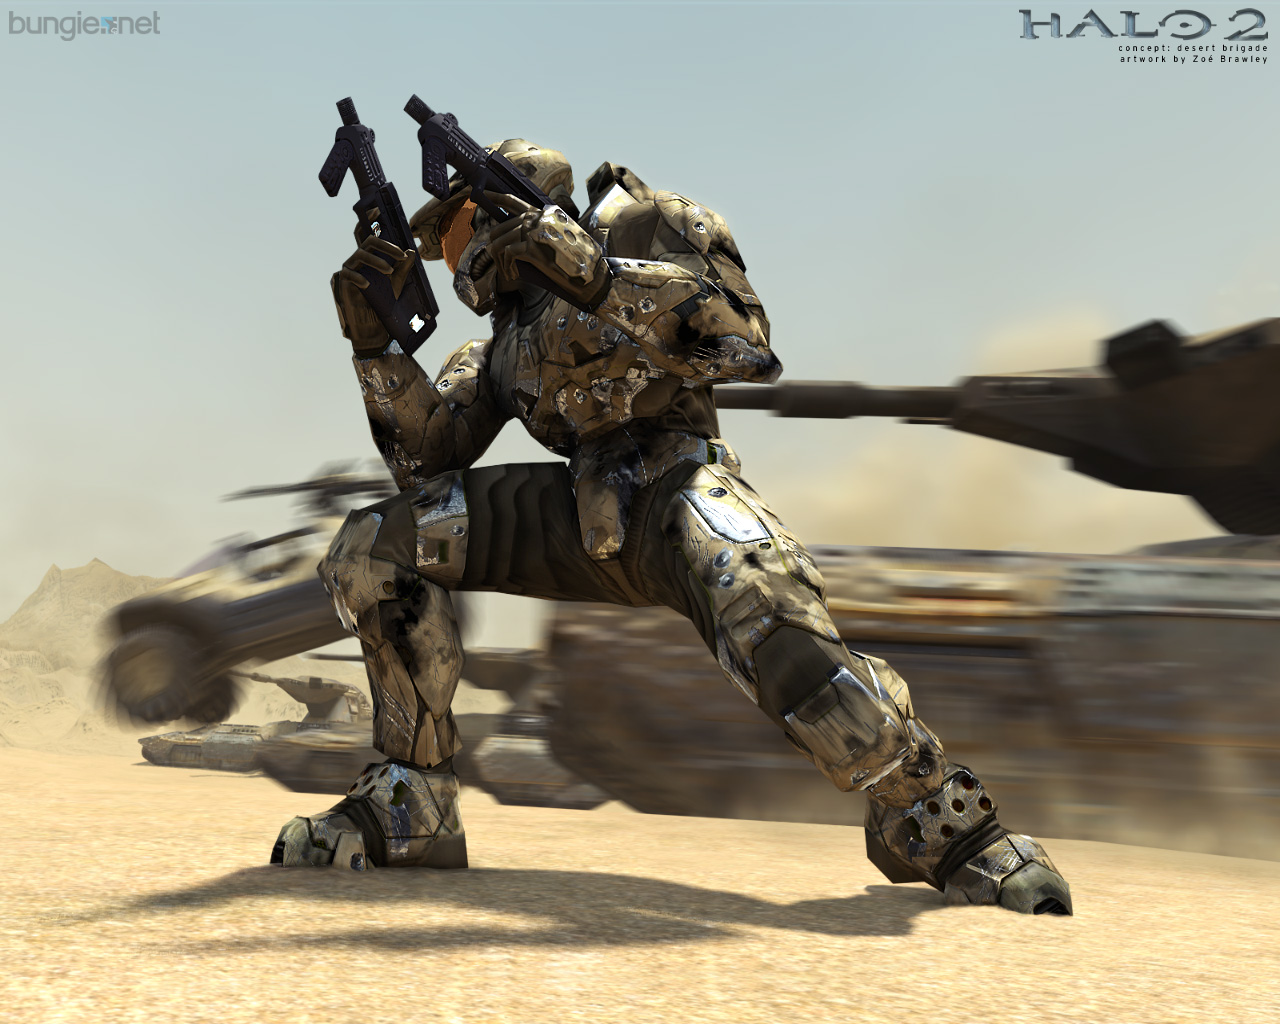 Halo is Love Halo is Life Halo-vg What's Life Without